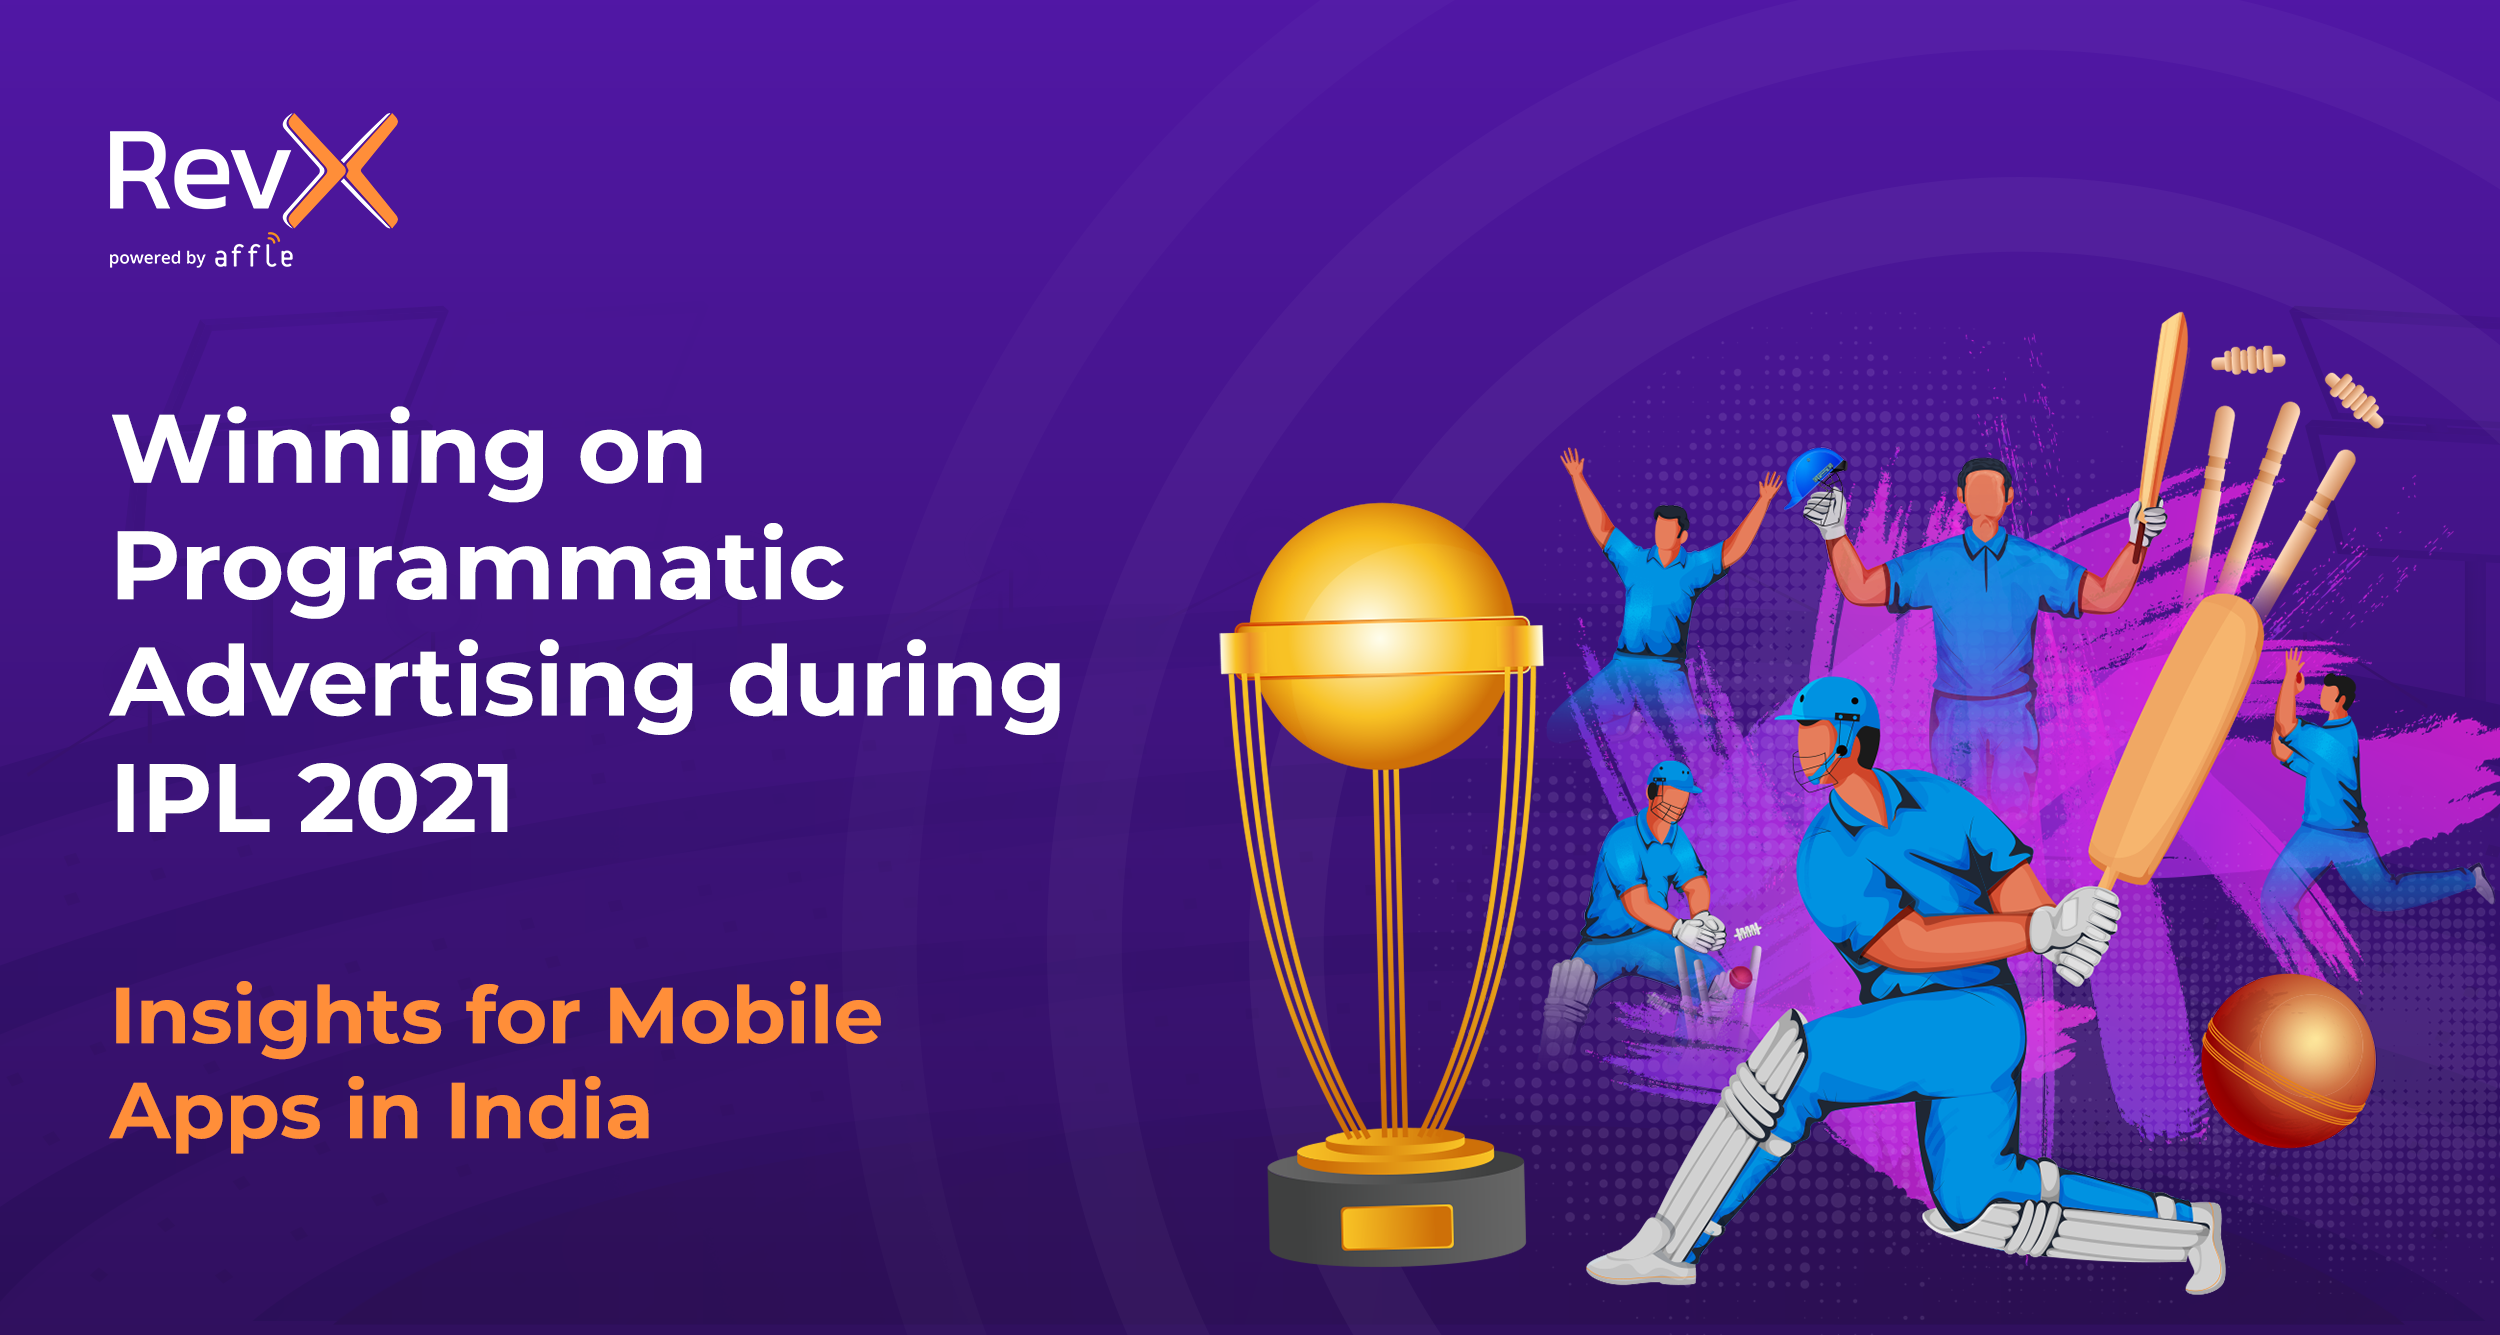 Winning on Programmatic Advertising during IPL 2021 - Insights for Mobile Apps in India